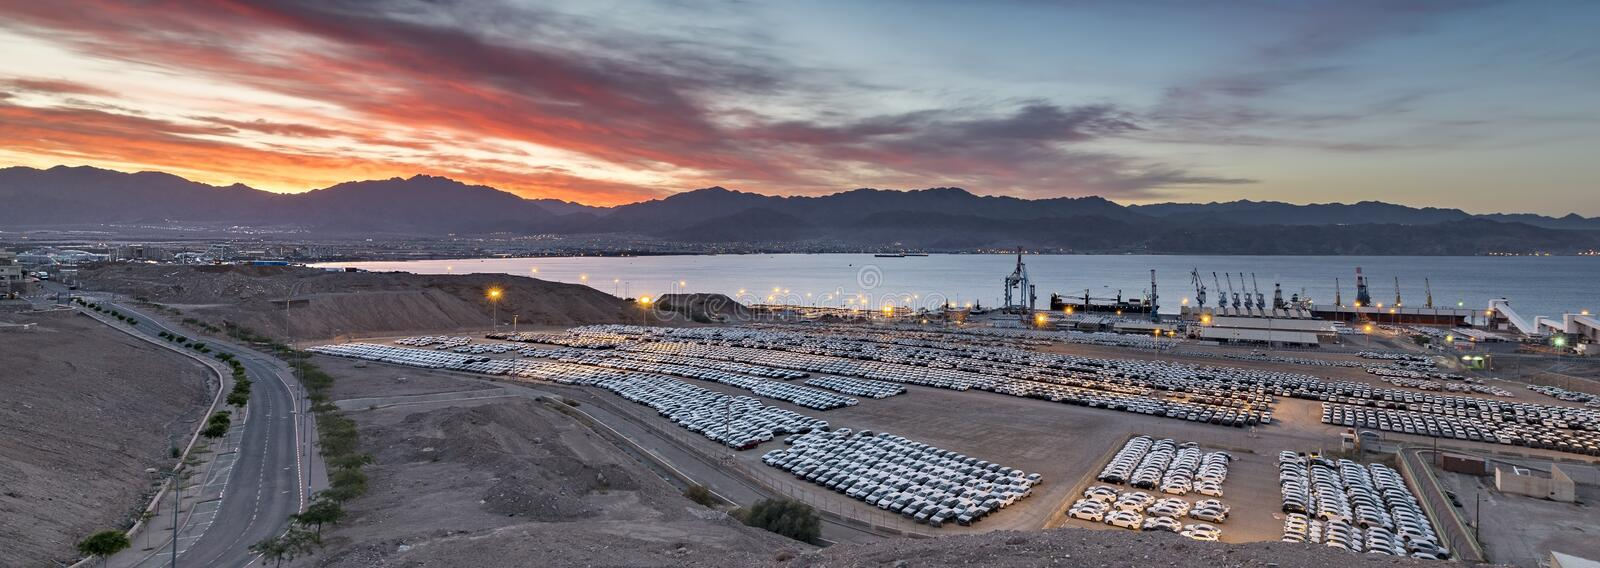 Colorful sunrise at a top of the mount above marine port Eilat. Photo was taken in vicinity of Eilat - famous tourist resort city in Israel stock image